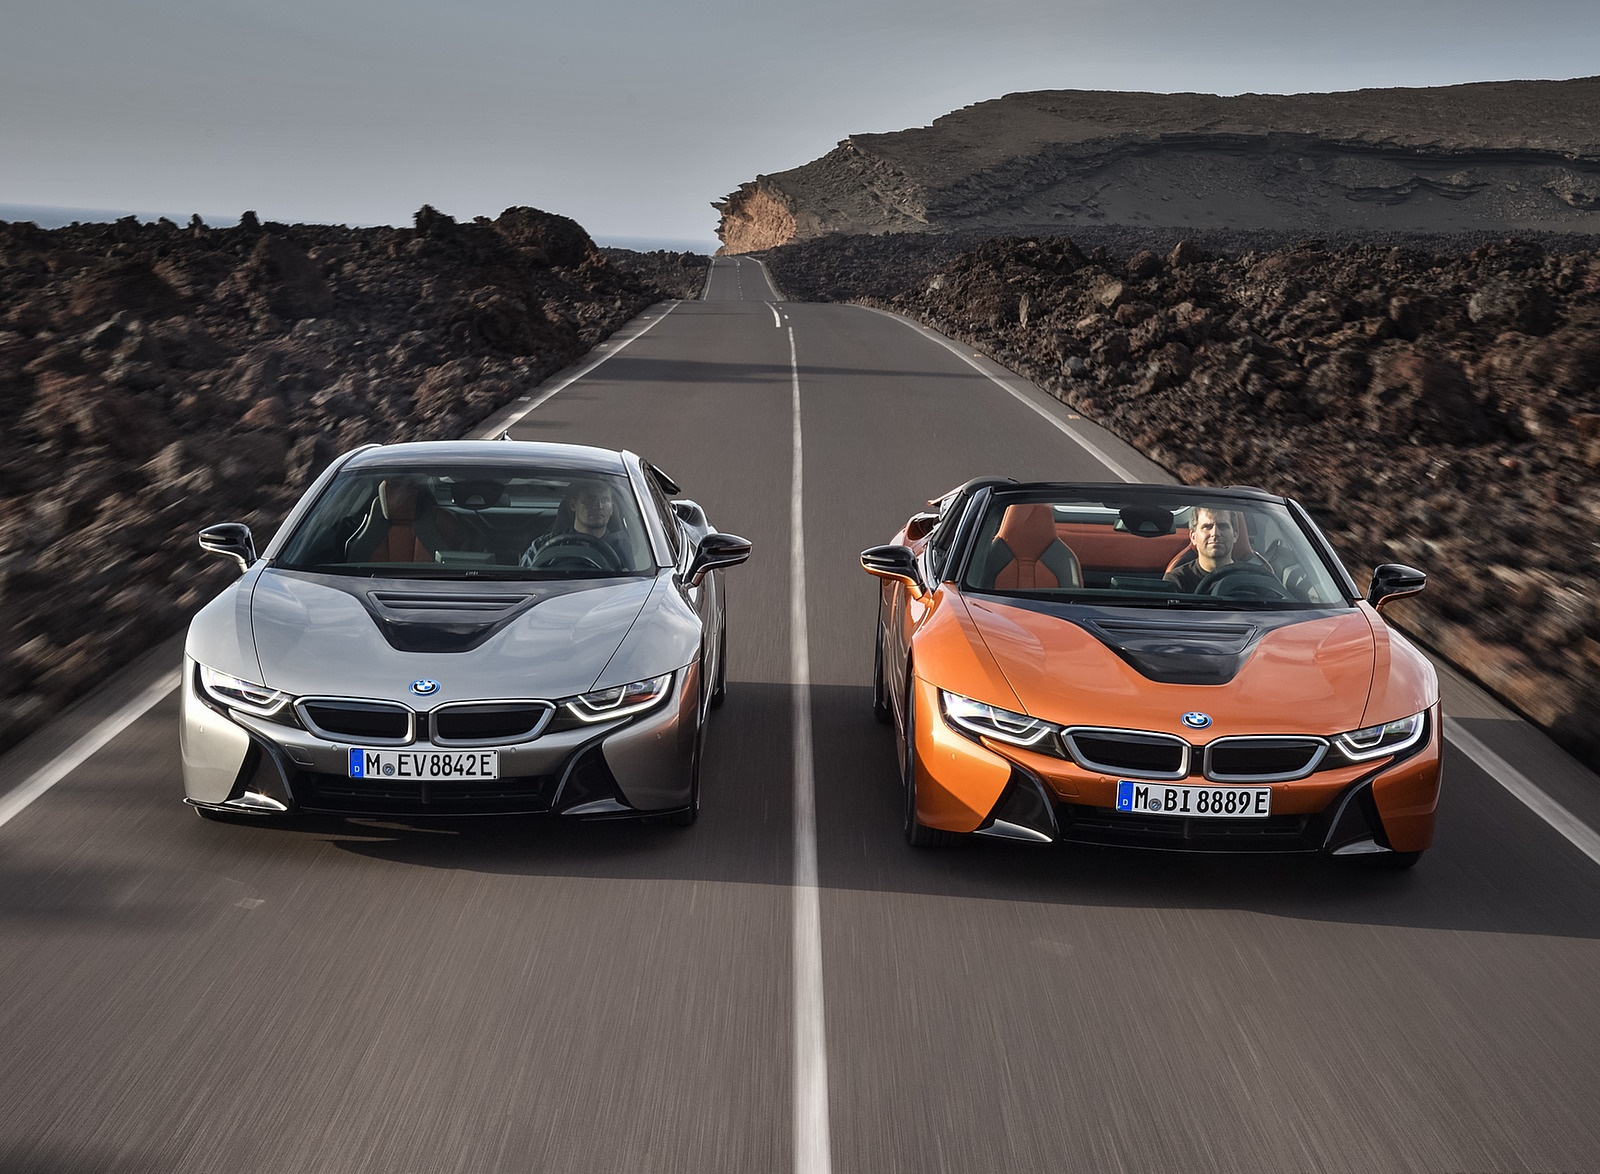 2019 BMW i8 Roadster and Coupe Wallpaper (1)